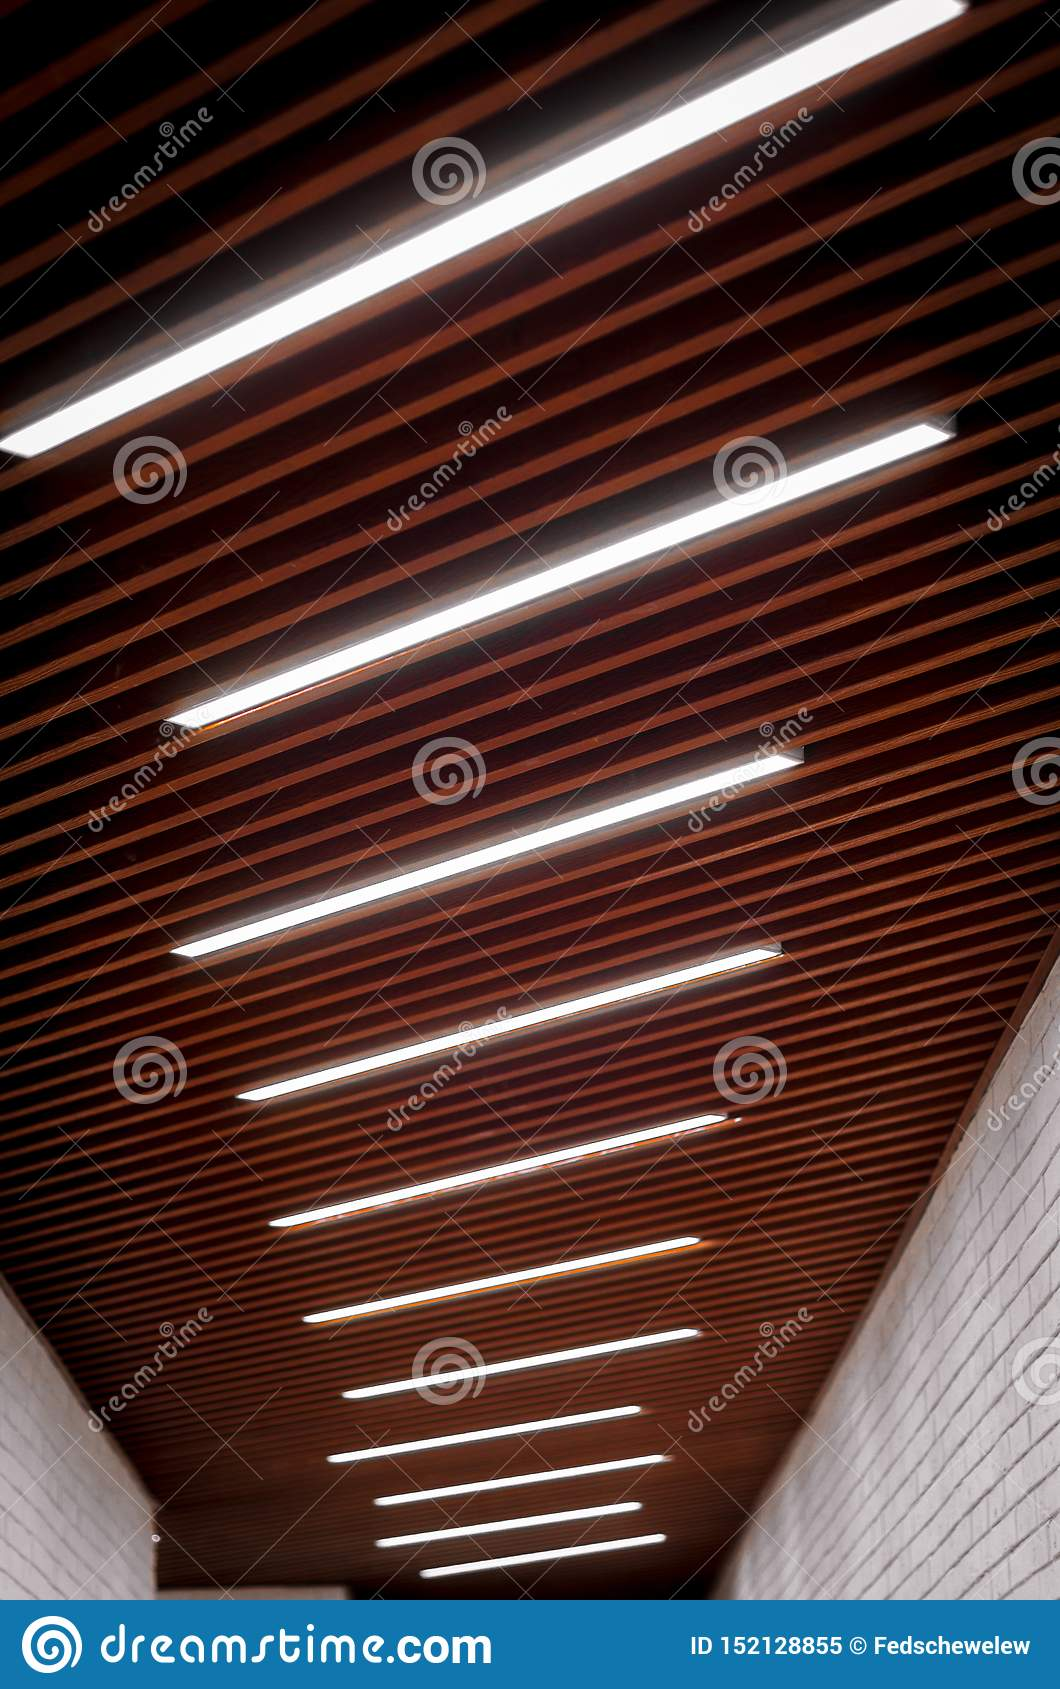 Lighting lamps on the ceiling in the corridor